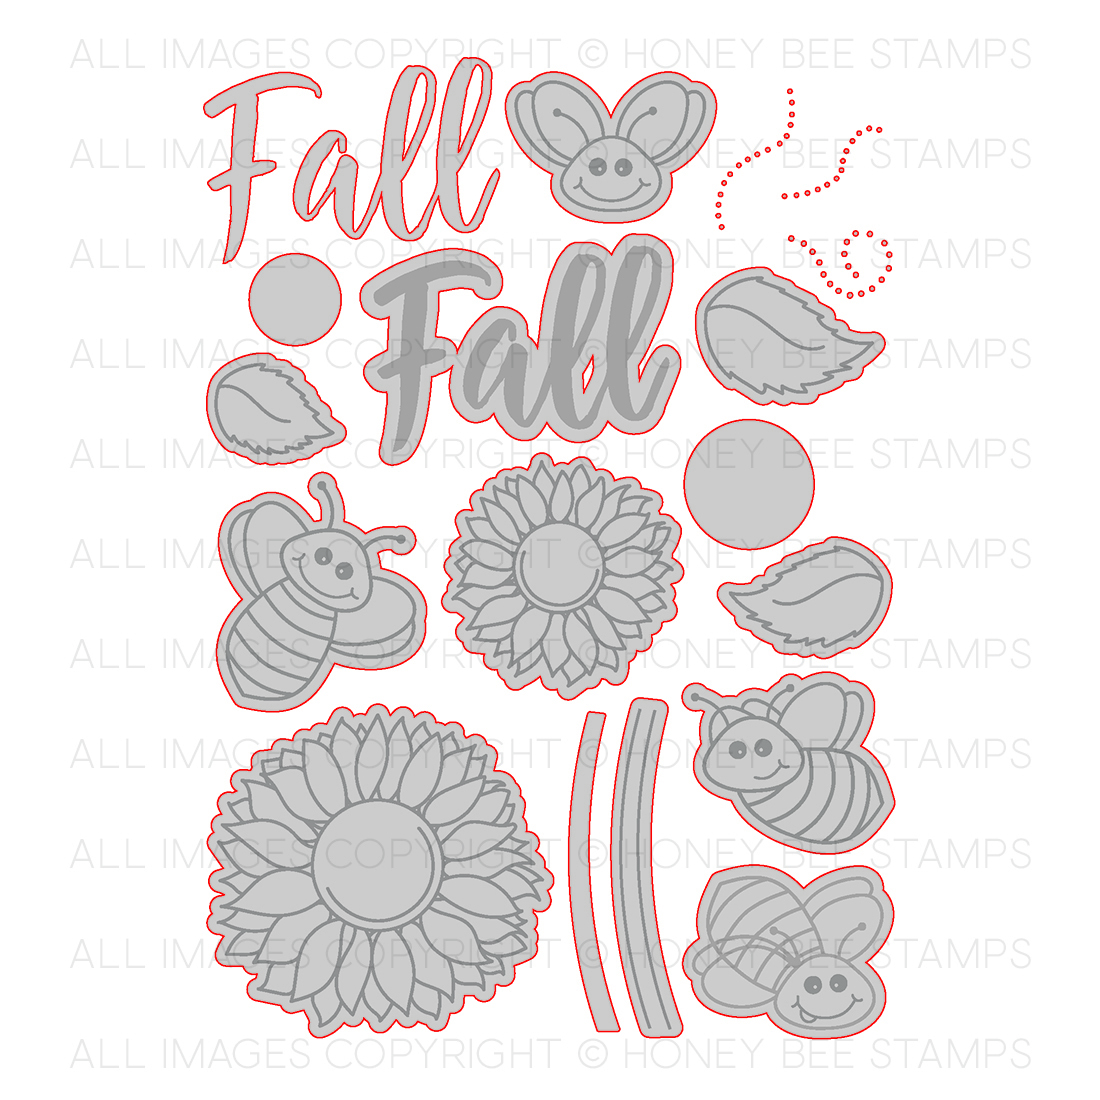 Honeybee Bee Stamps - Happy Fall Y'all | Honey Cuts | Steel Craft Dies